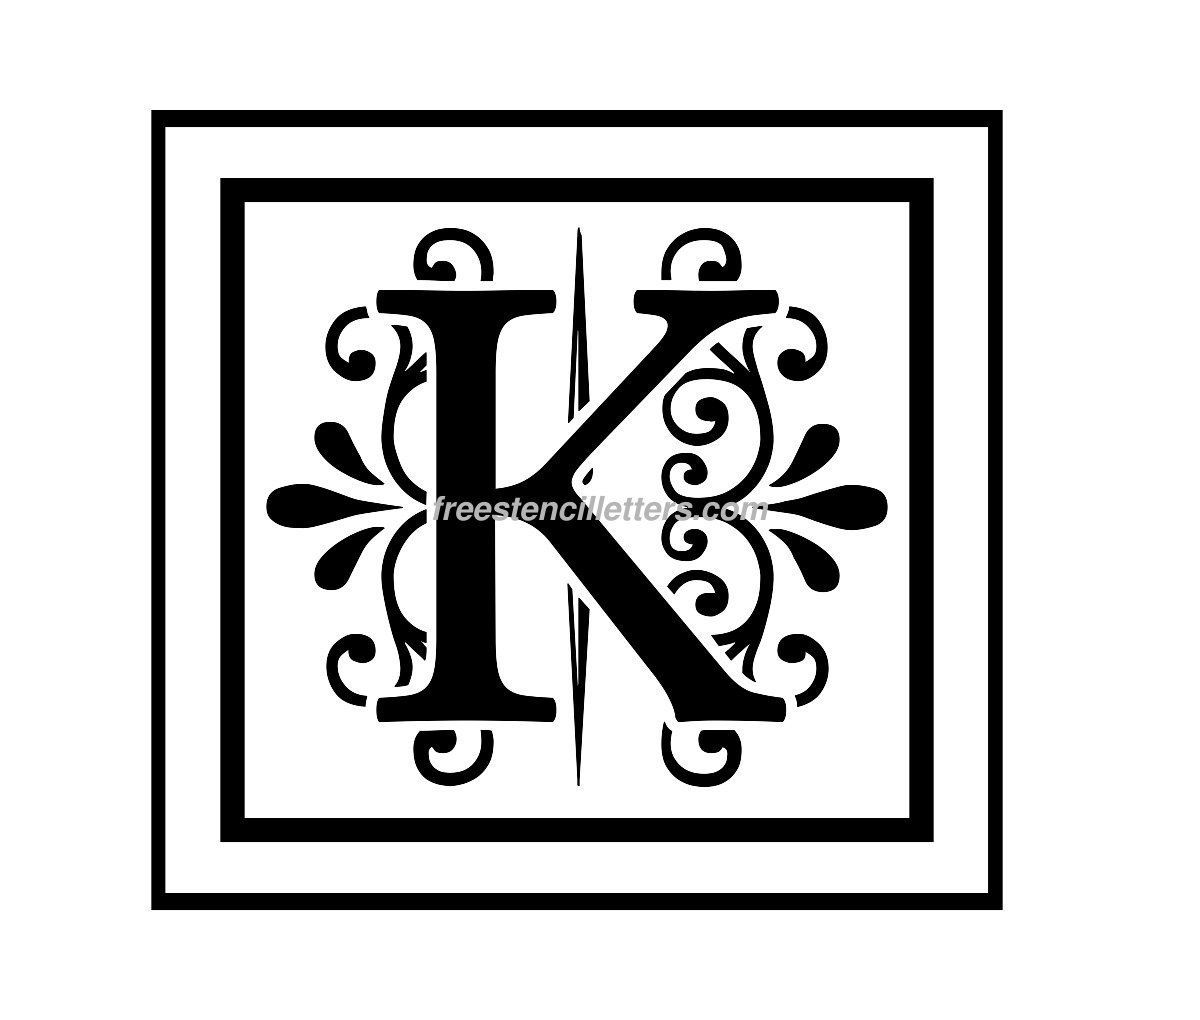 graphic relating to Free Printable Stencils to Cut Out identify Print K Letter Stencil - Totally free Stencil Letters